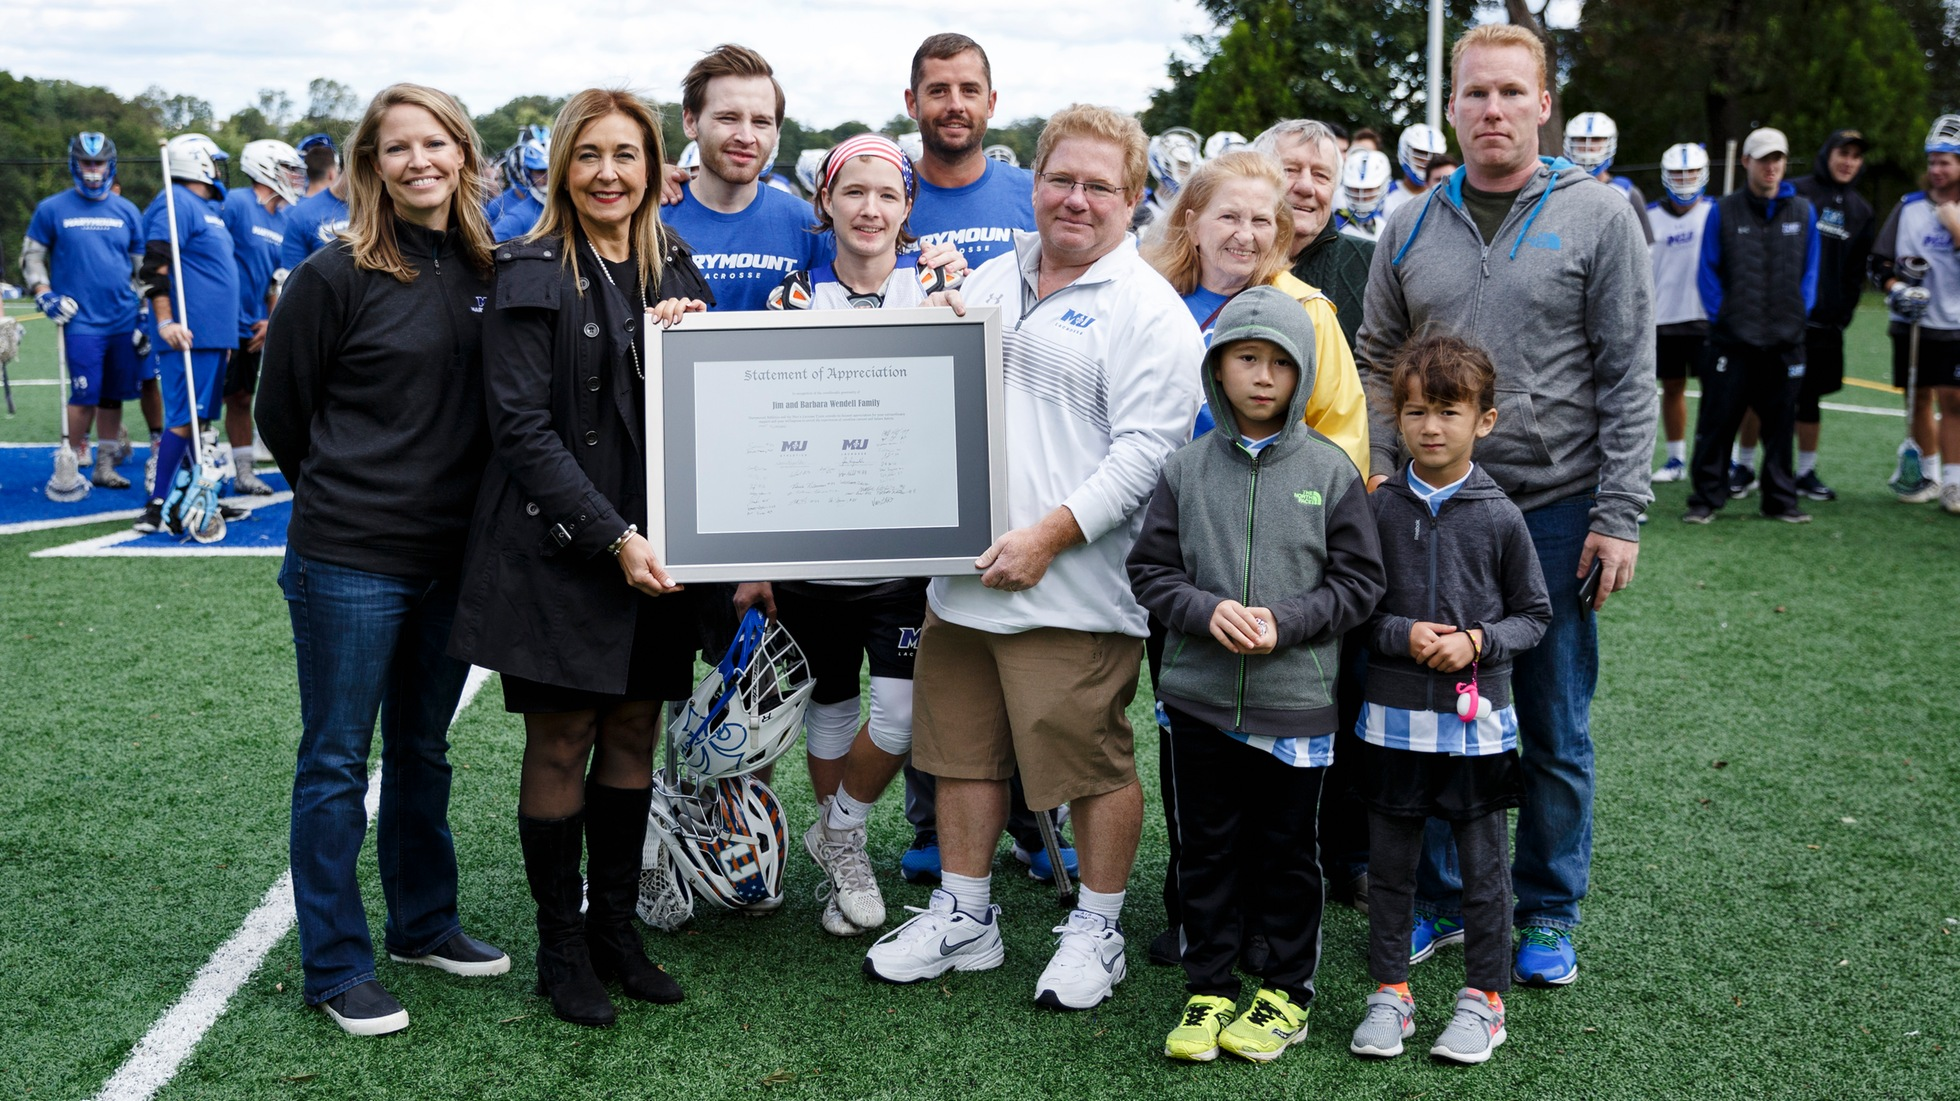 Marymount Athletics Department announces donation for men's lacrosse locker room naming